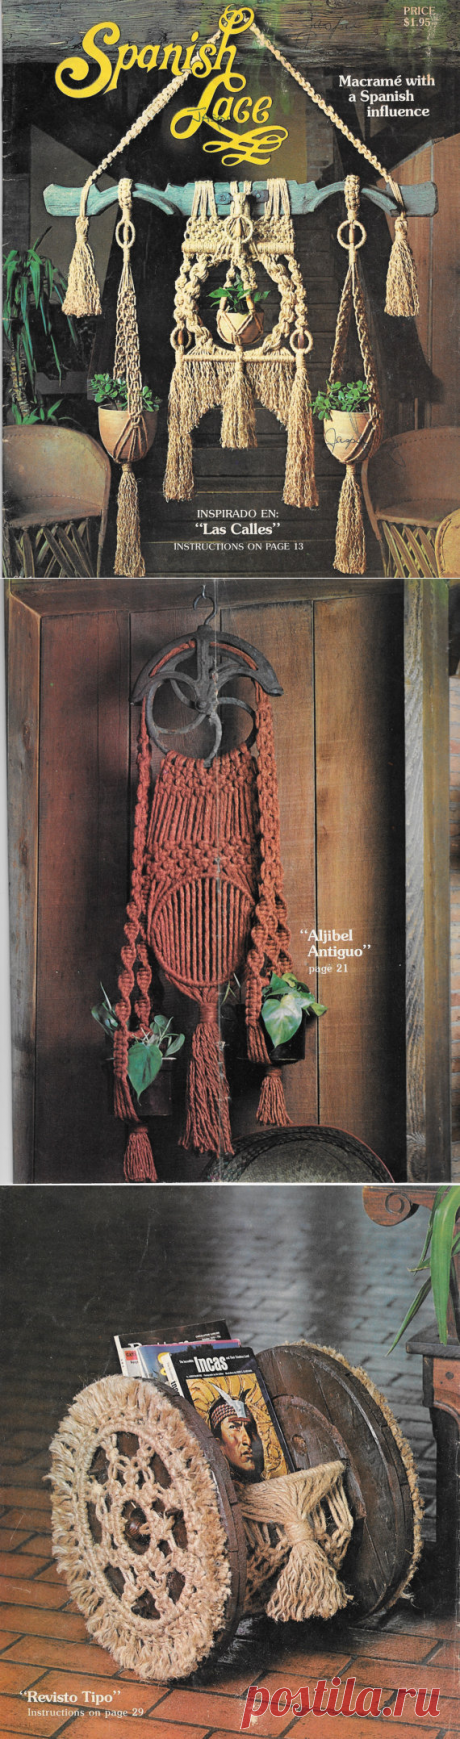 Macrame Pattern Booklet Macrame with Spanish от TheFoundBox